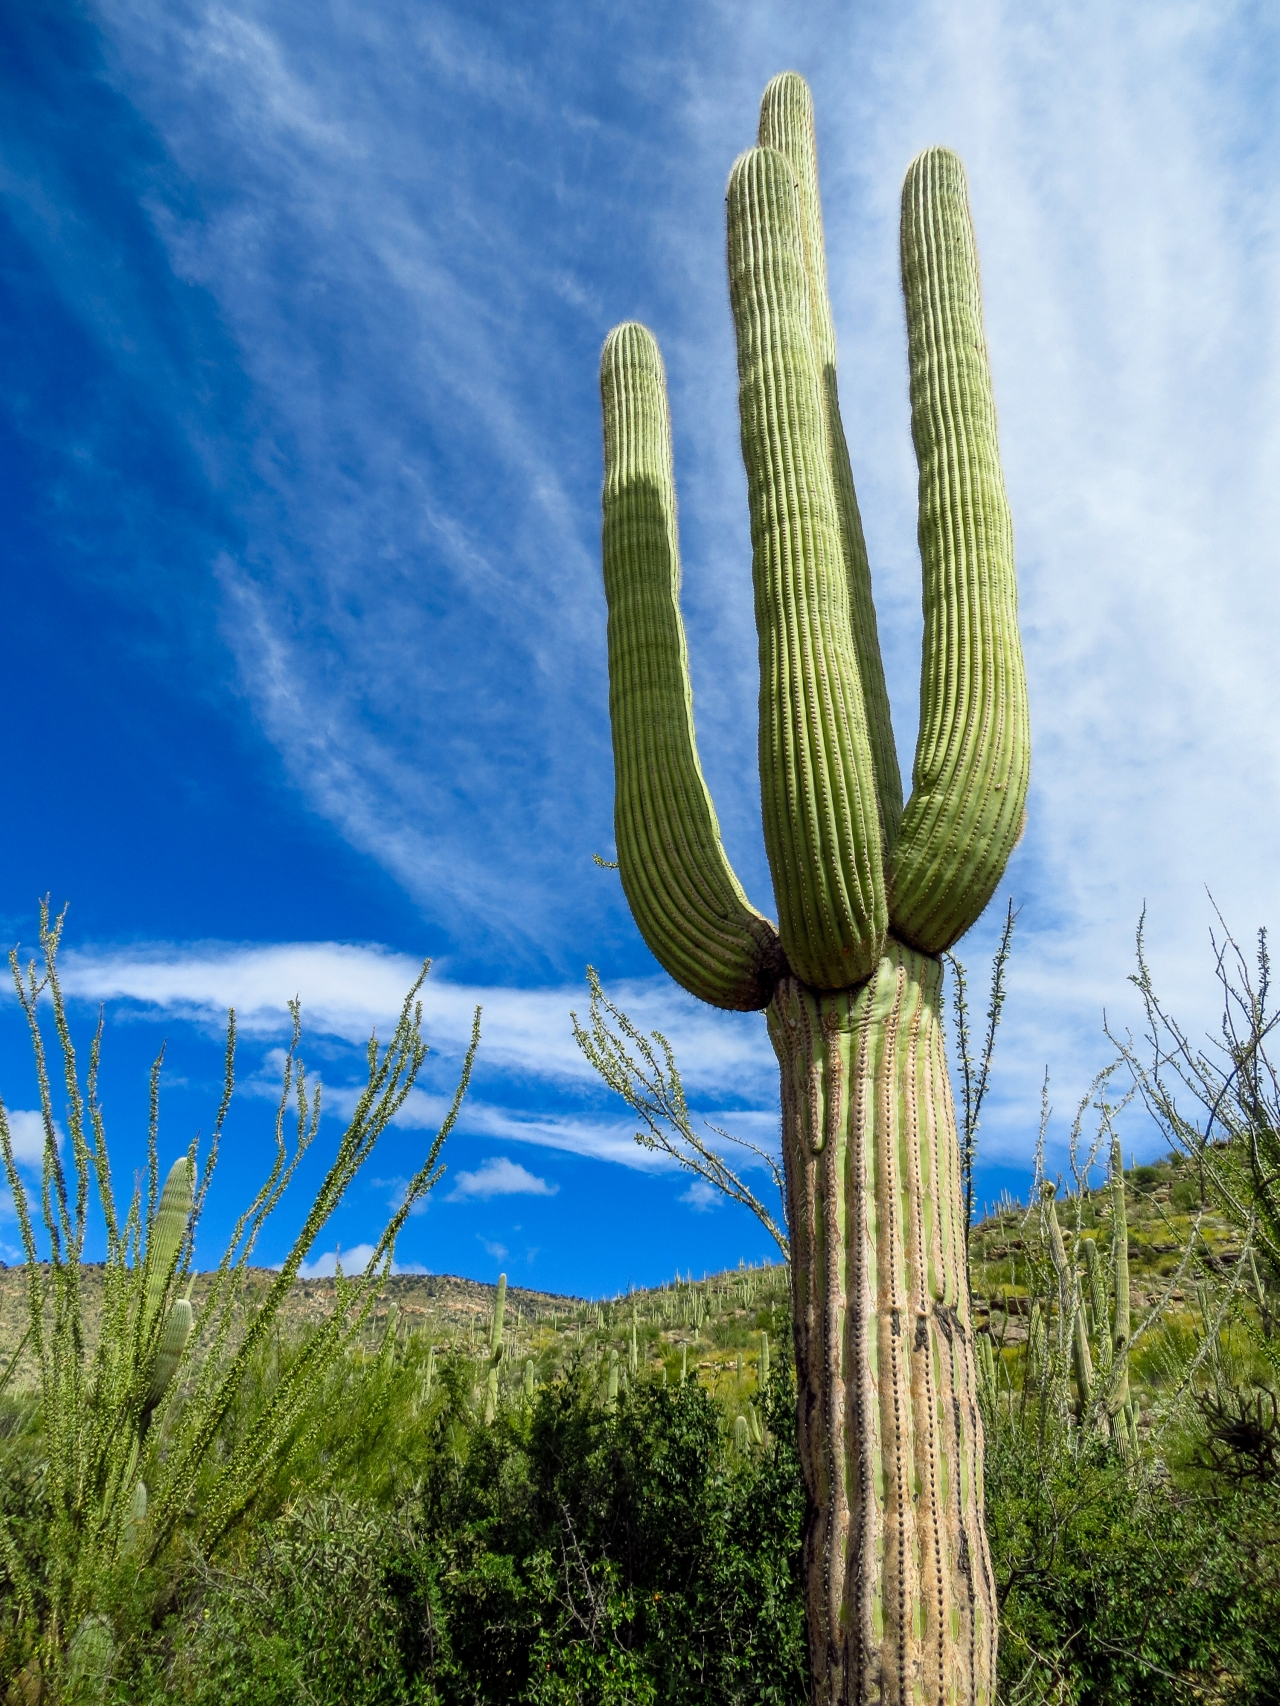 Saguaro: On Deserts, Water and the American West.